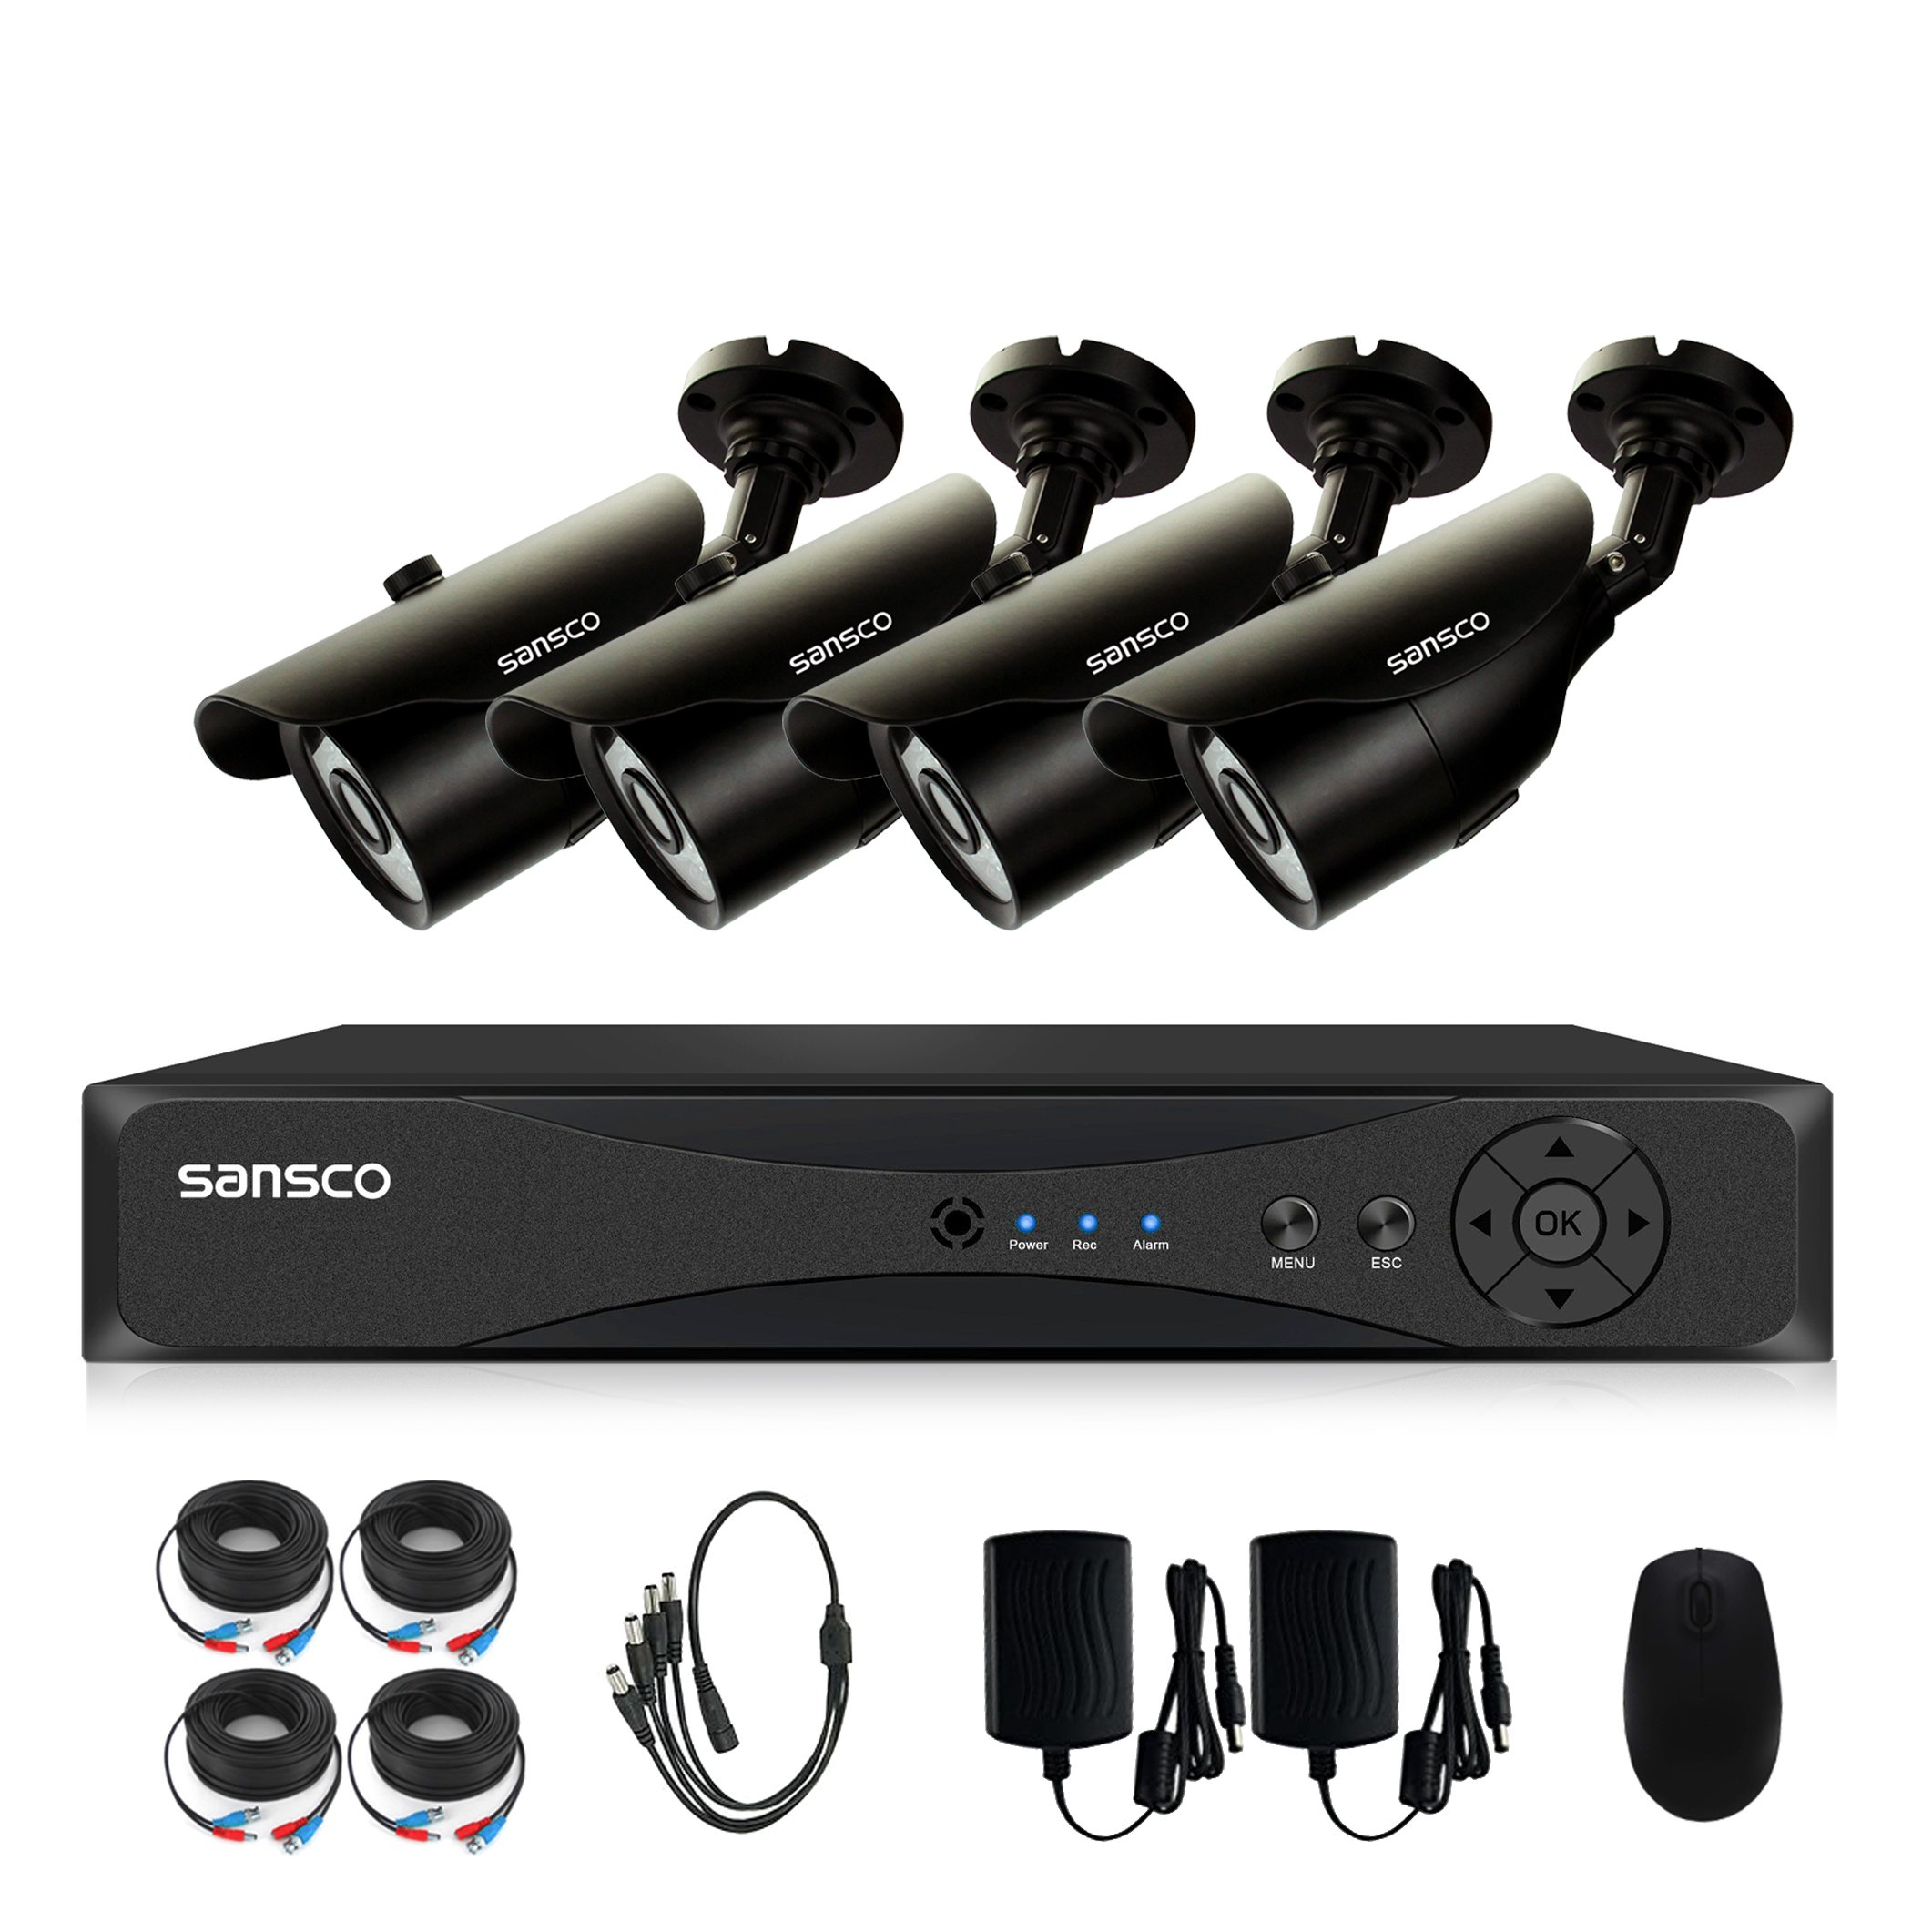 SANSCO Home Security Camera System with 4-Channel 1080N Smart DVR and 4 Bullet Cameras (Super HD 720p 1MP) Smart Surveillance Cameras Kit, No HDD Included by SANSCO (Image #2)